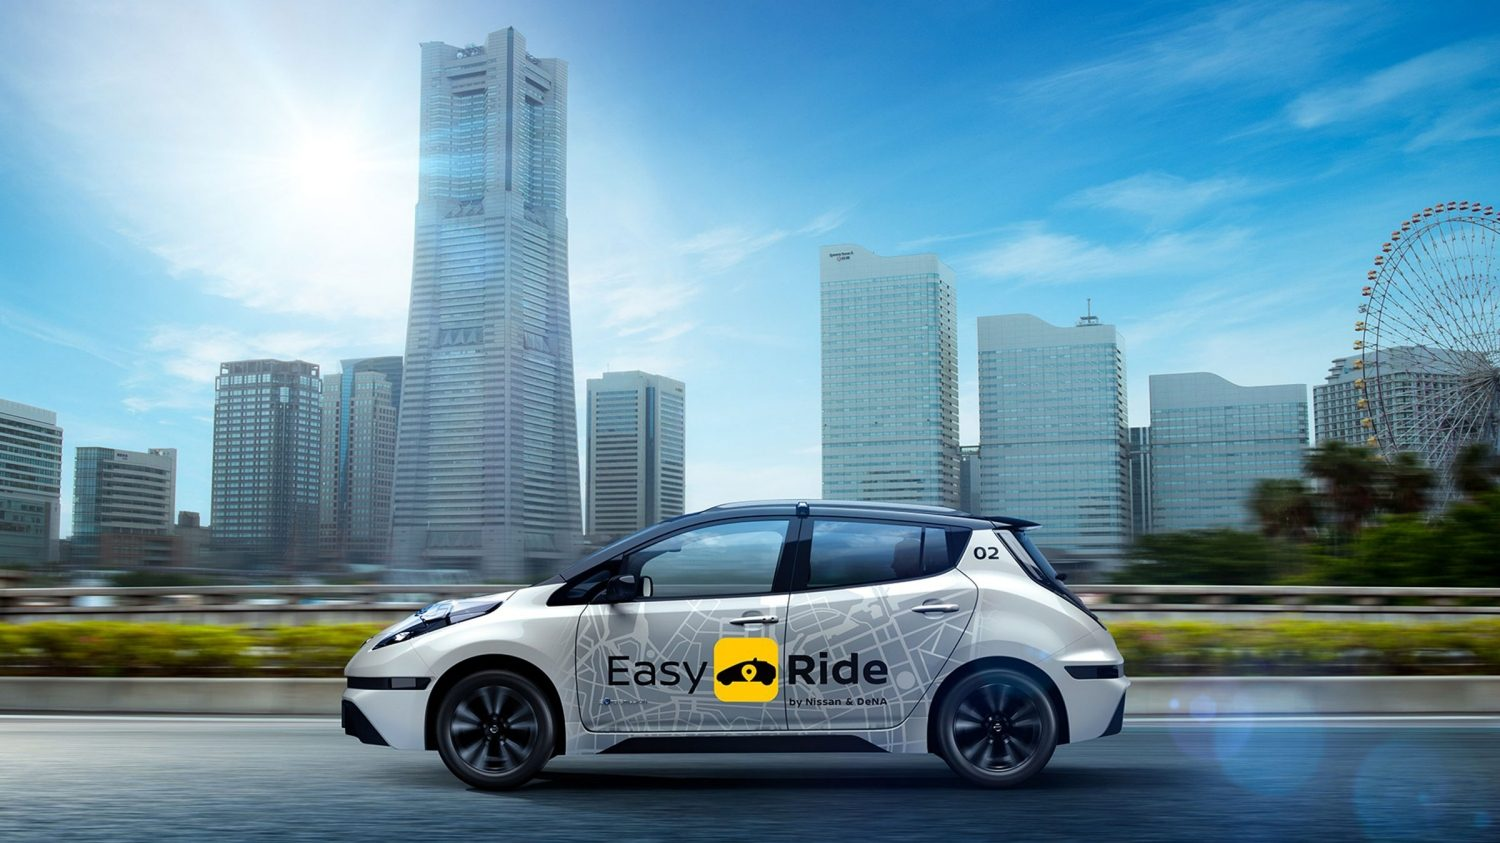 Nissan robo-vehicle Easy Ride